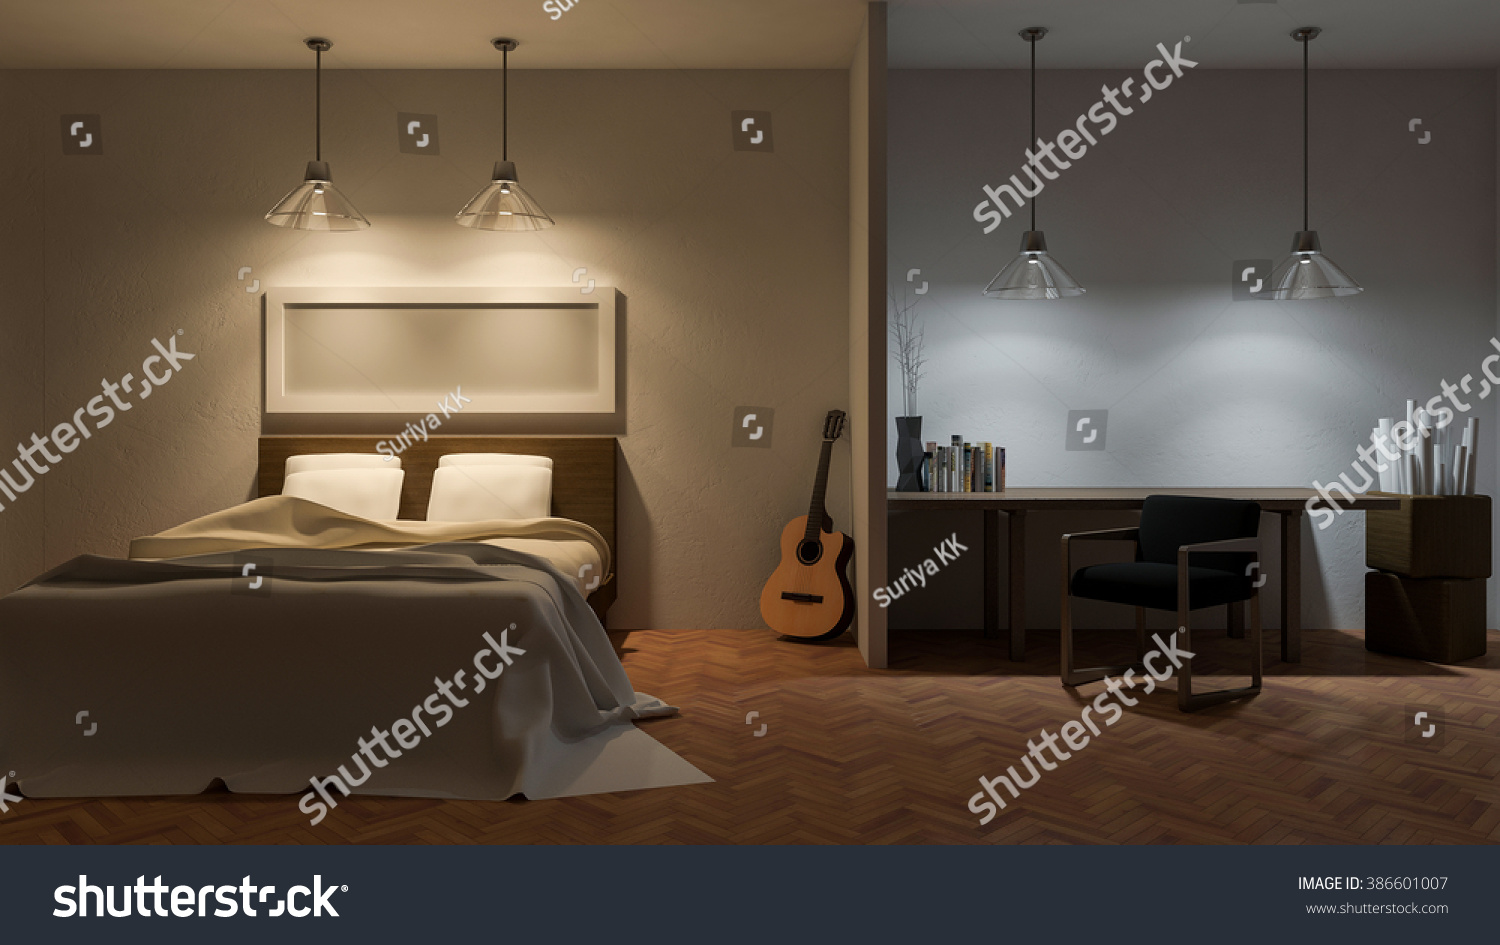 3ds Rendered Image Of Bed Room In Night Time Warm White